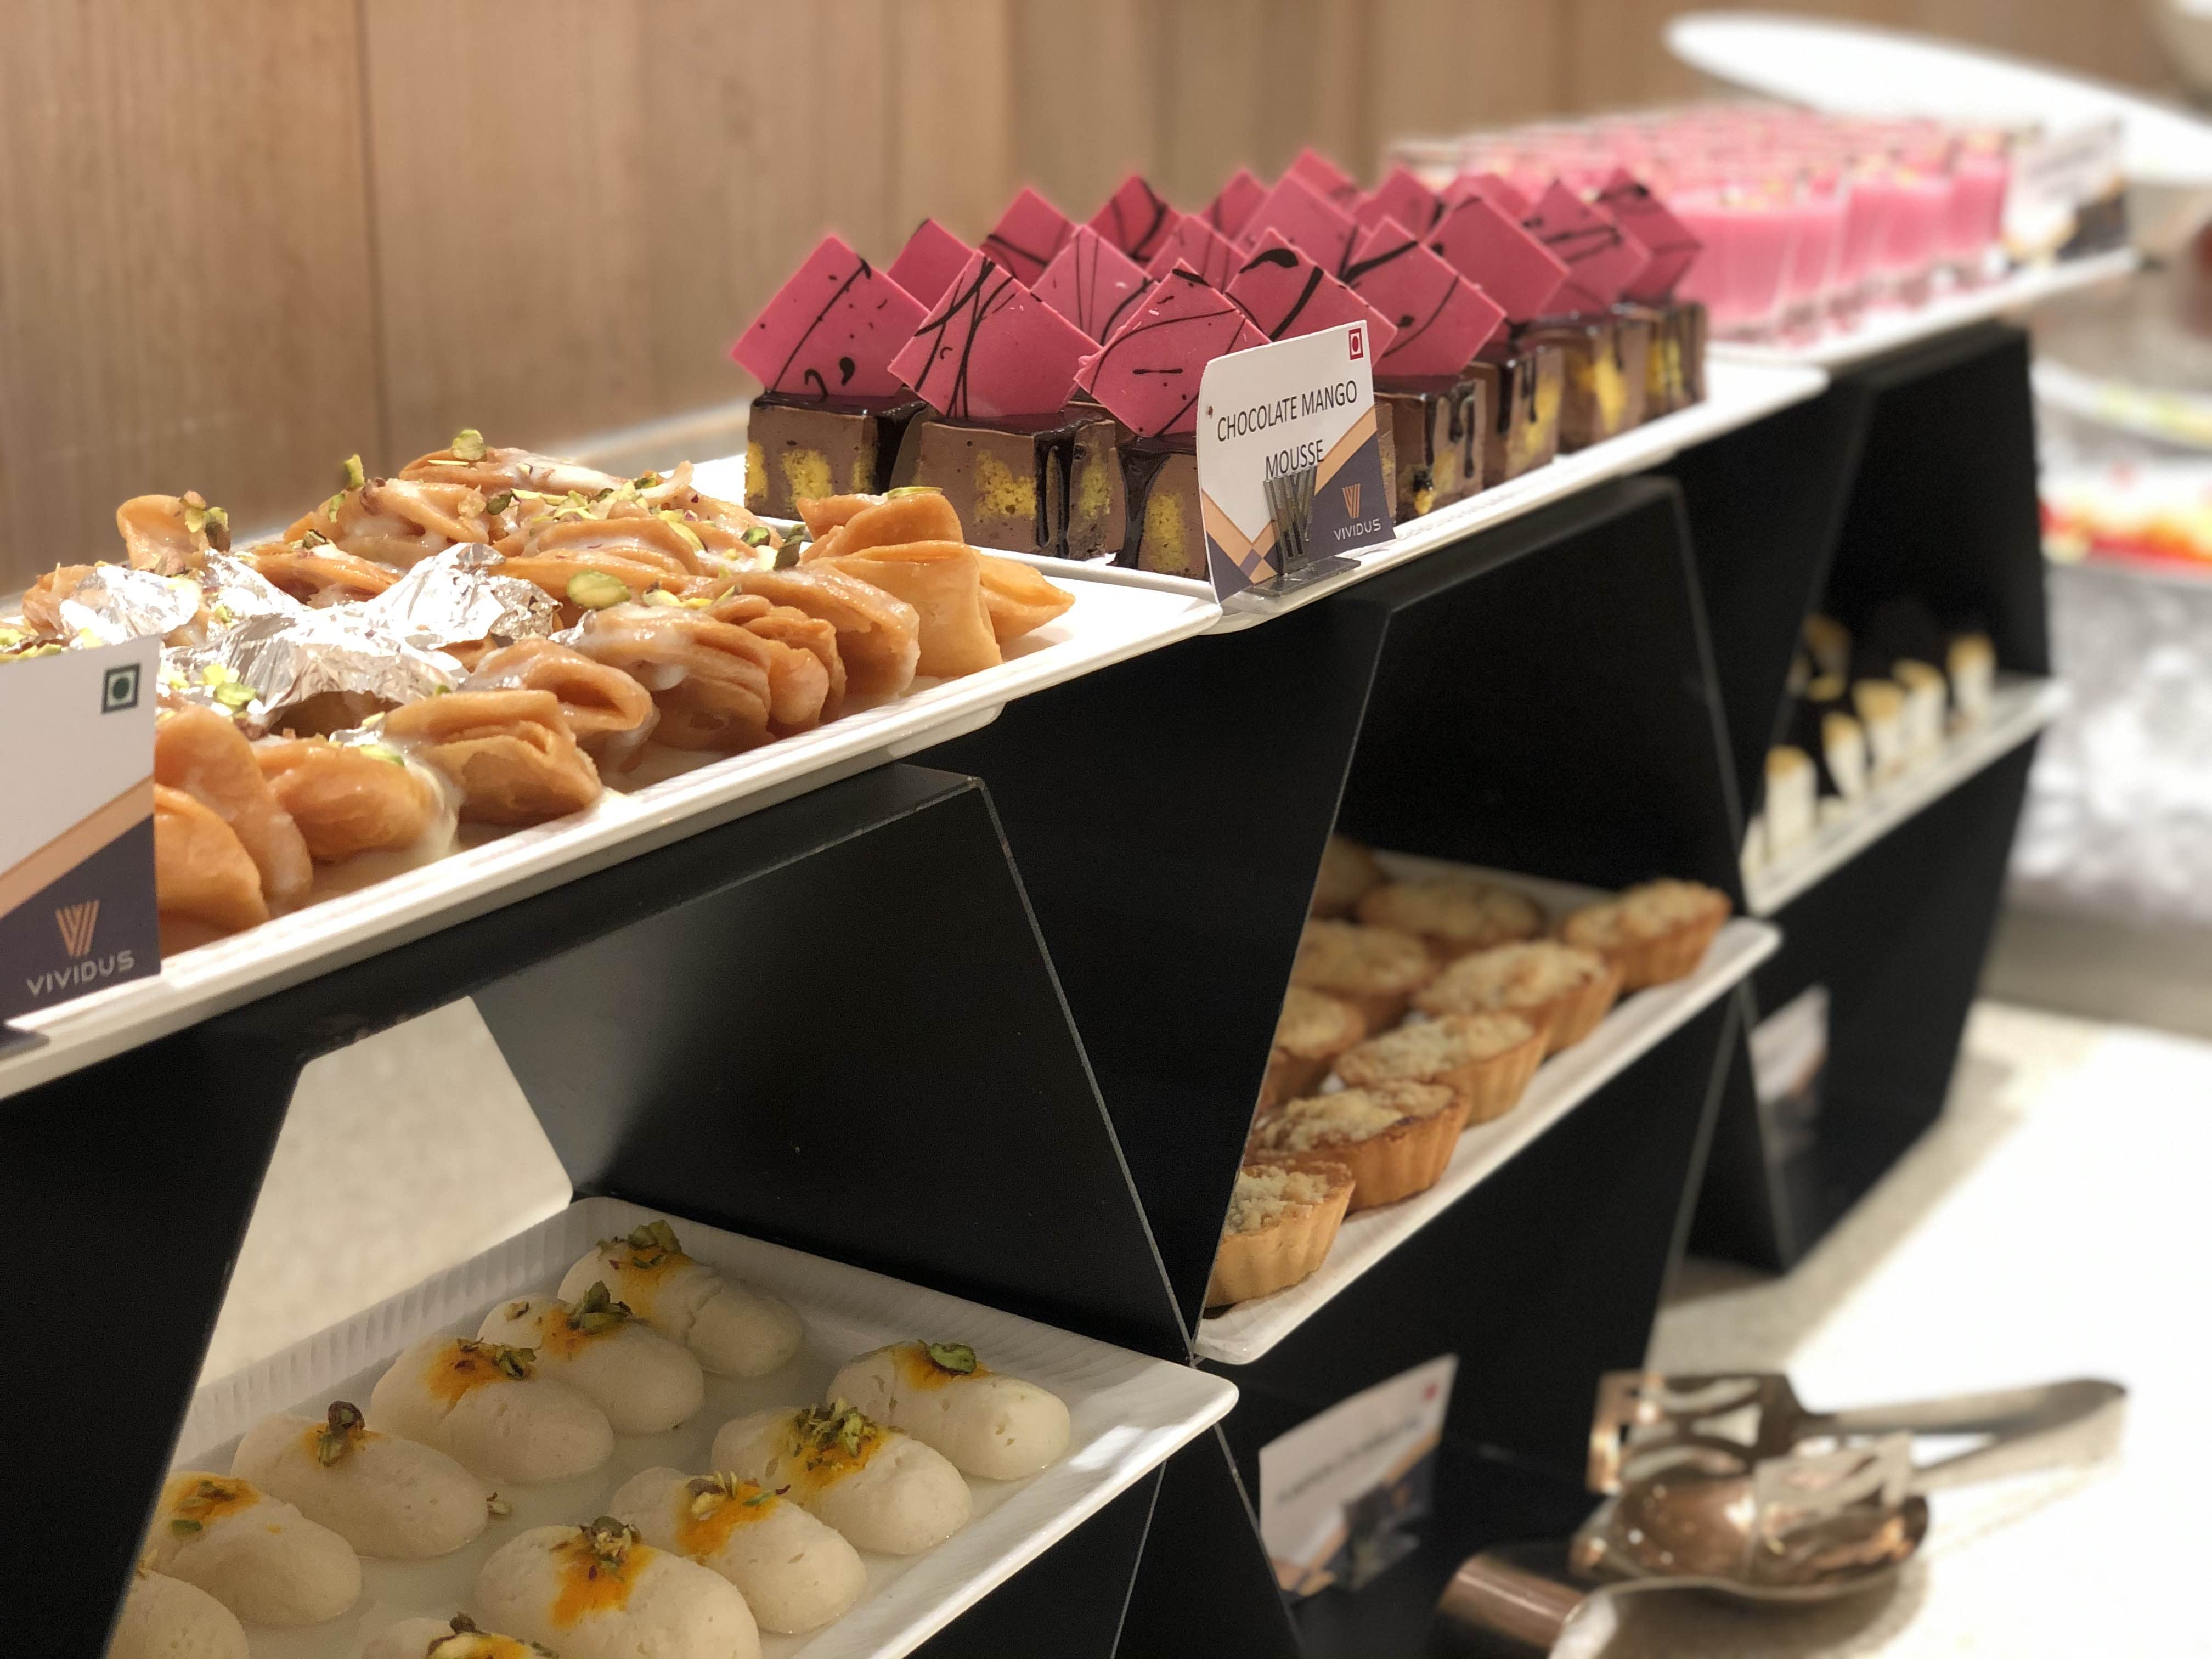 Food,Cuisine,Pâtisserie,Dish,Sweetness,Delicacy,Bakery,Dessert,Side dish,Pastry